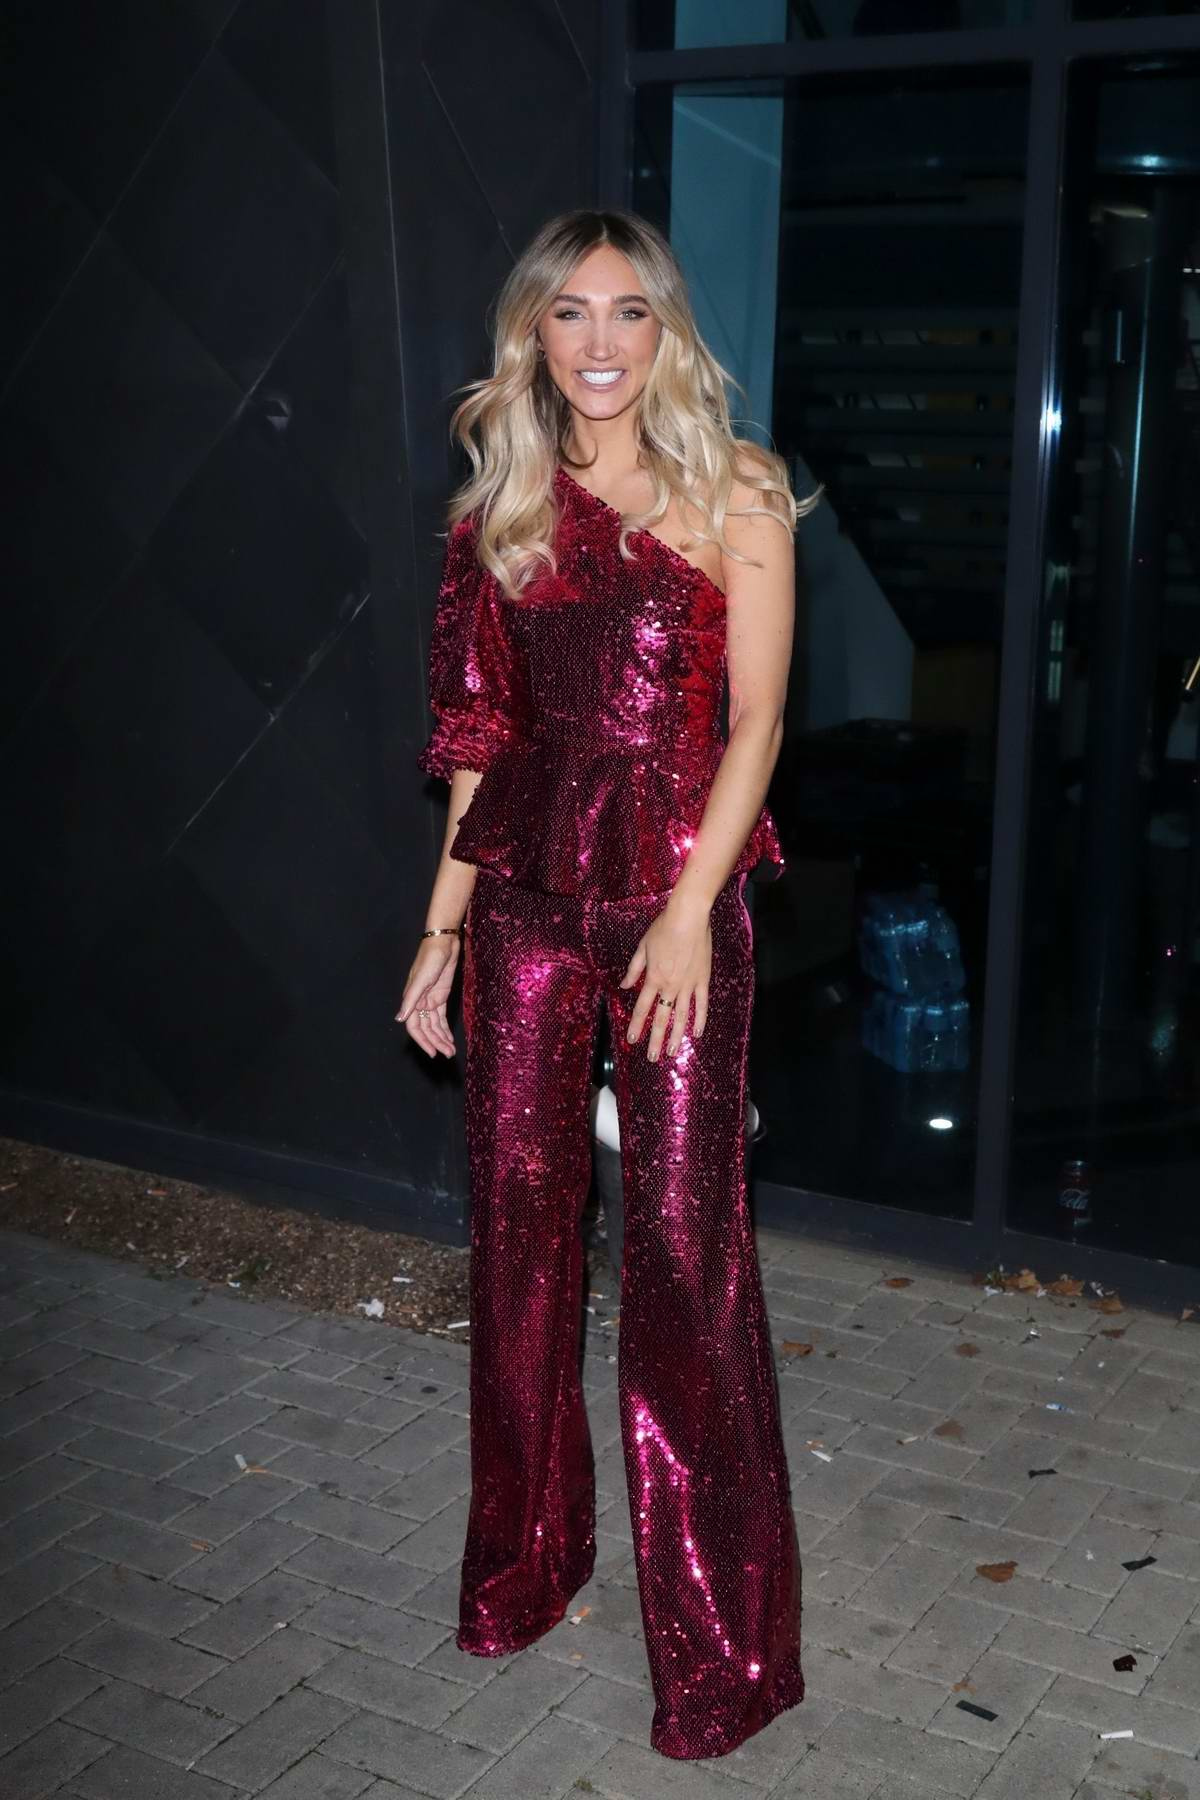 Megan McKenna dazzles in a sparkly maroon outfit as she leaves X Factor Studio in London, UK